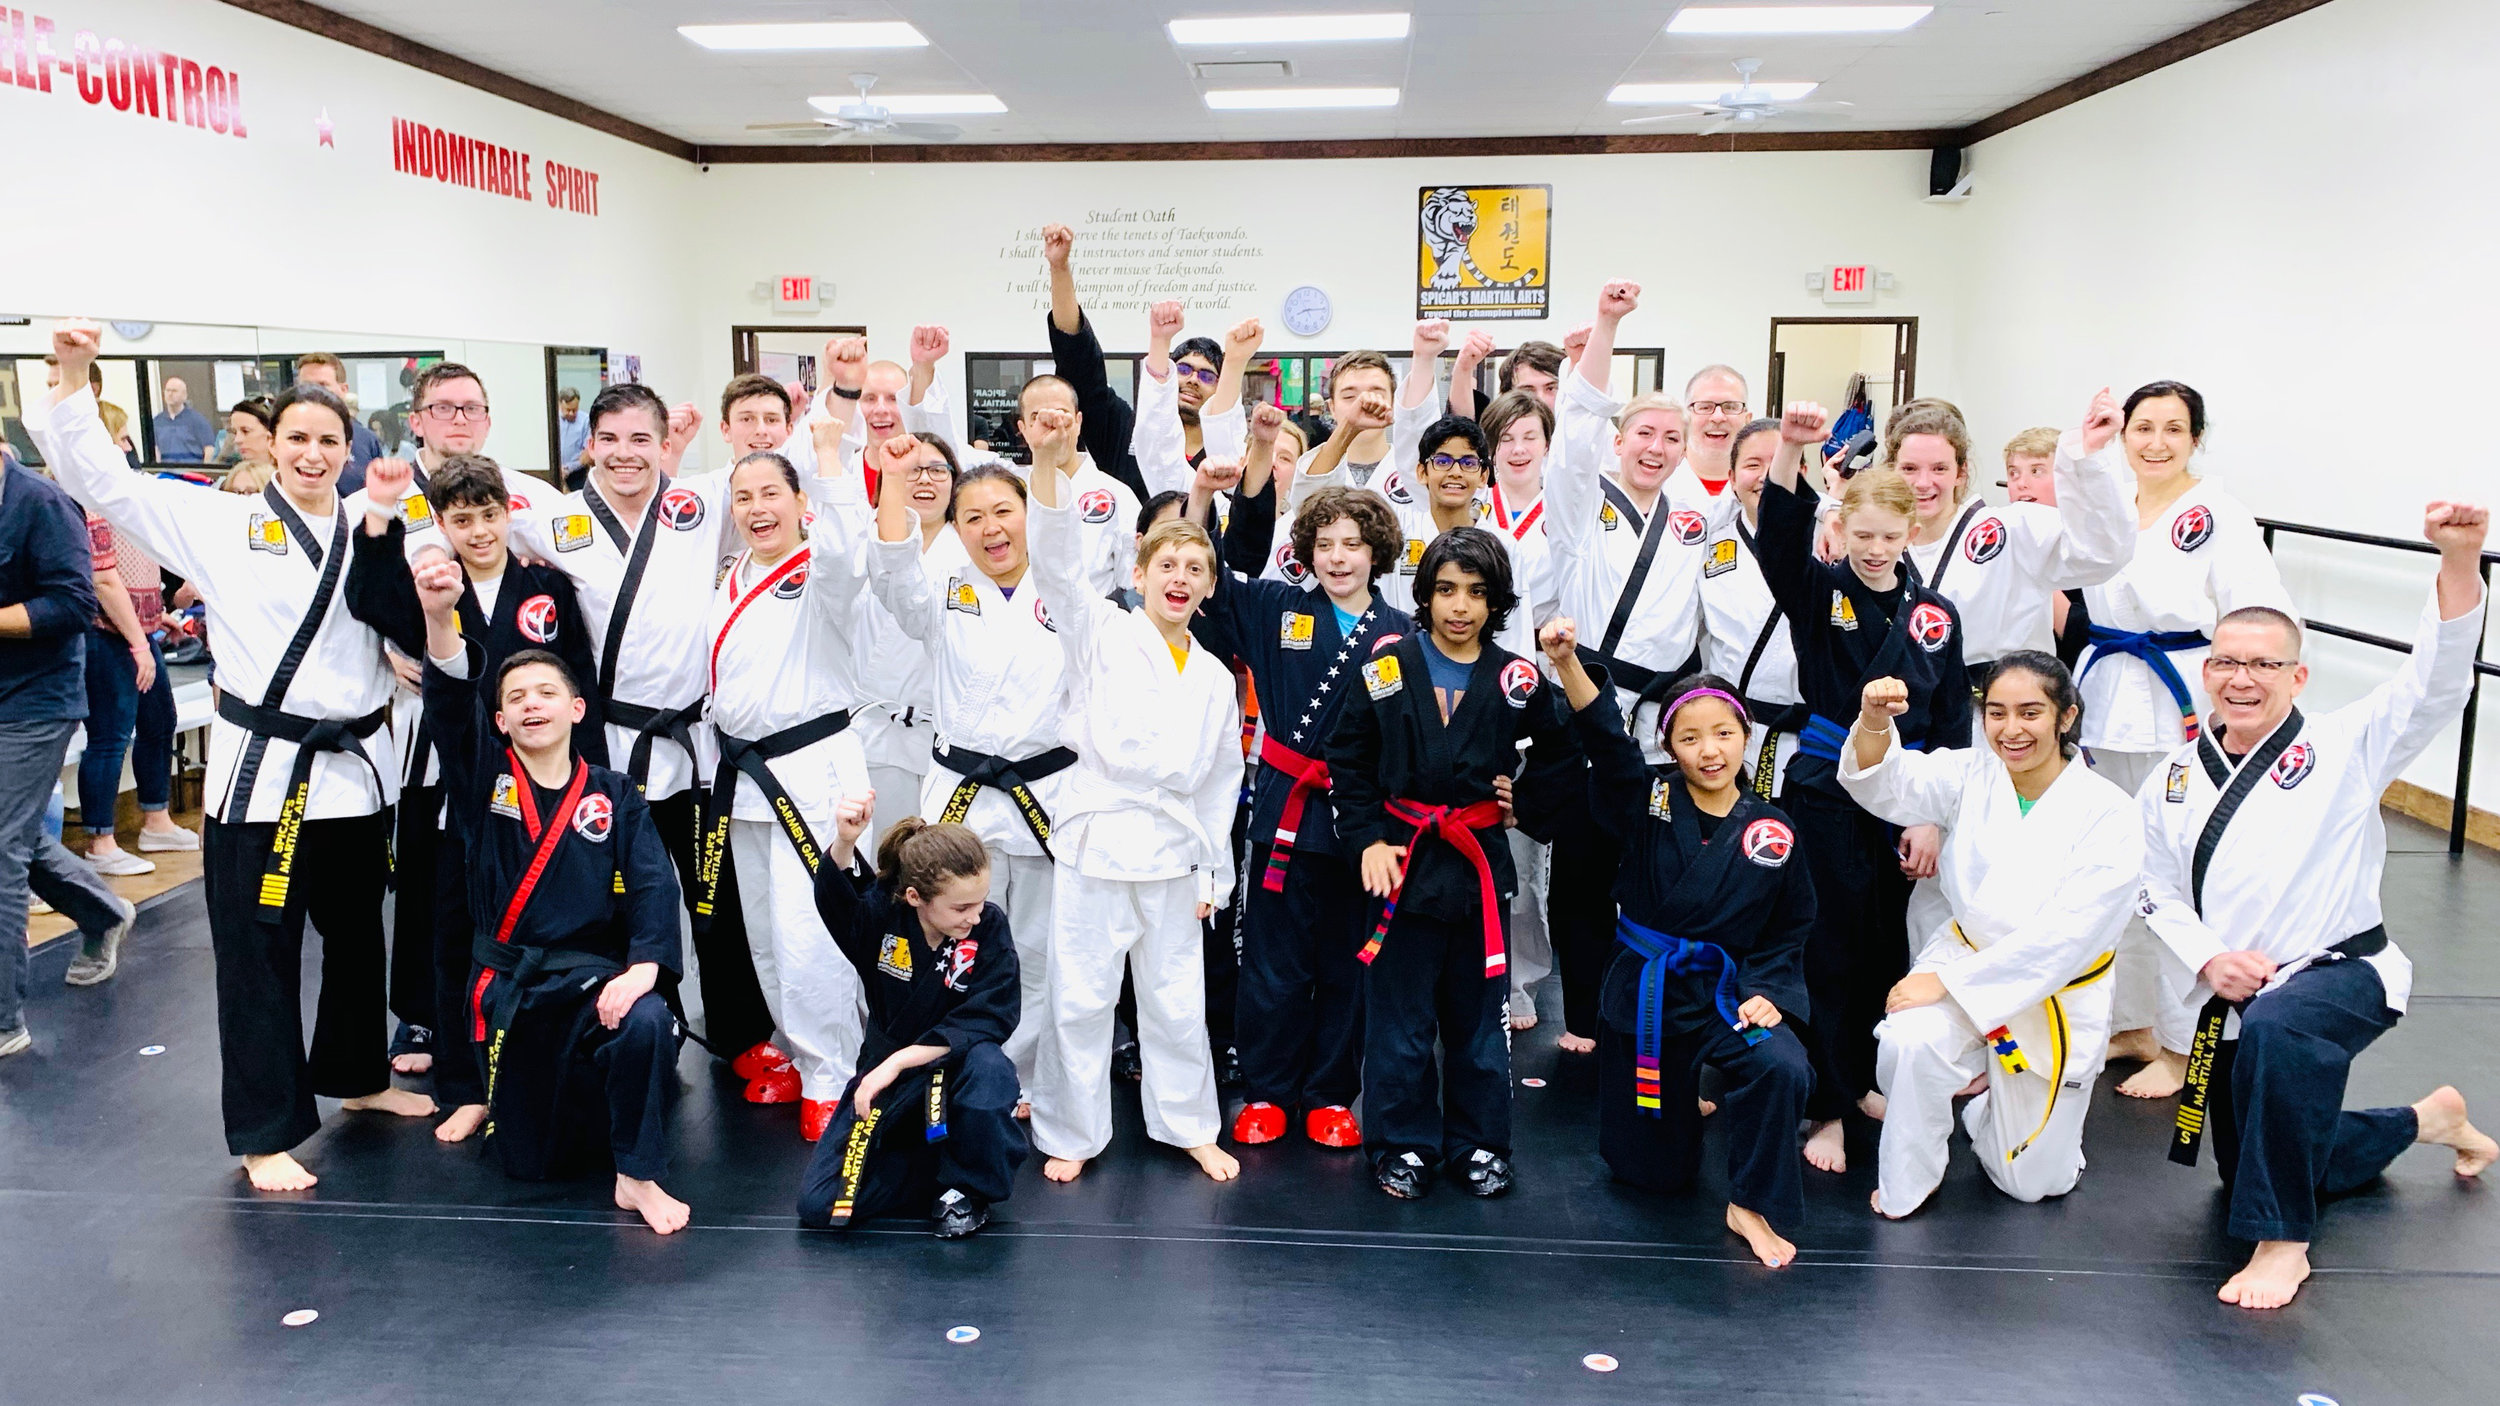 martial-arts-karate-taekwondo-southlake-texas.jpeg